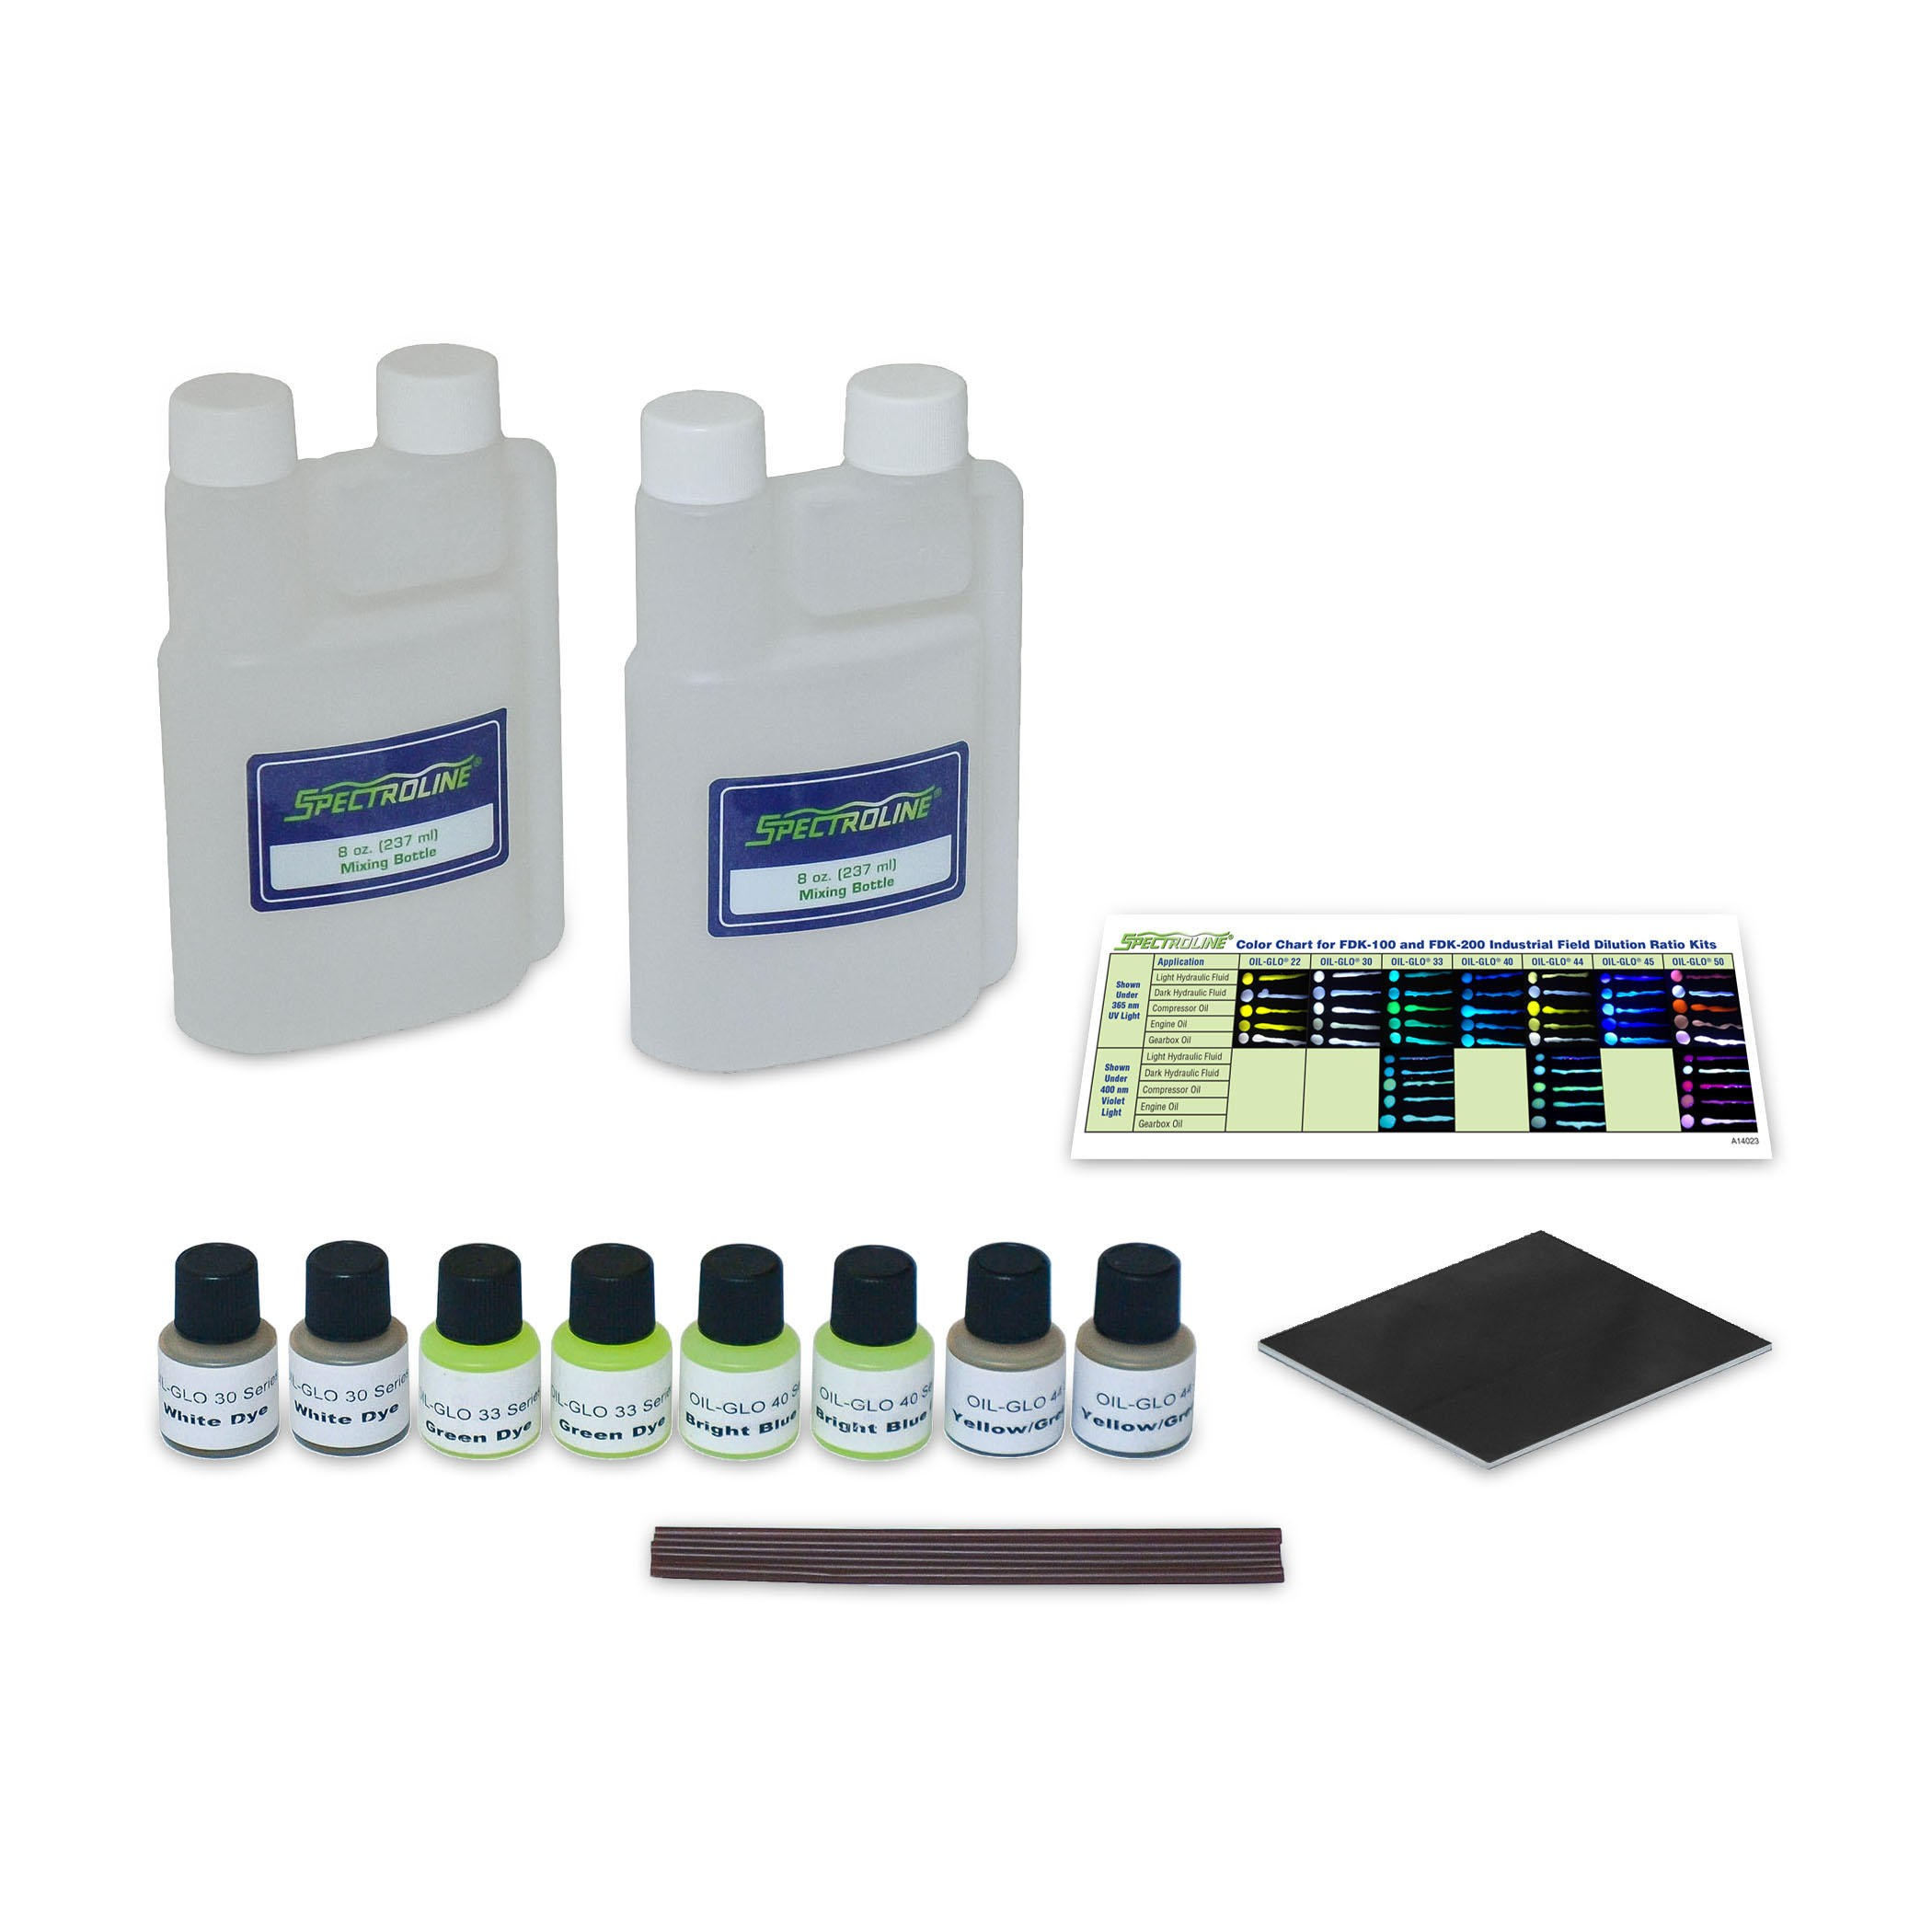 Oil Sample Test FDK-100 Kit